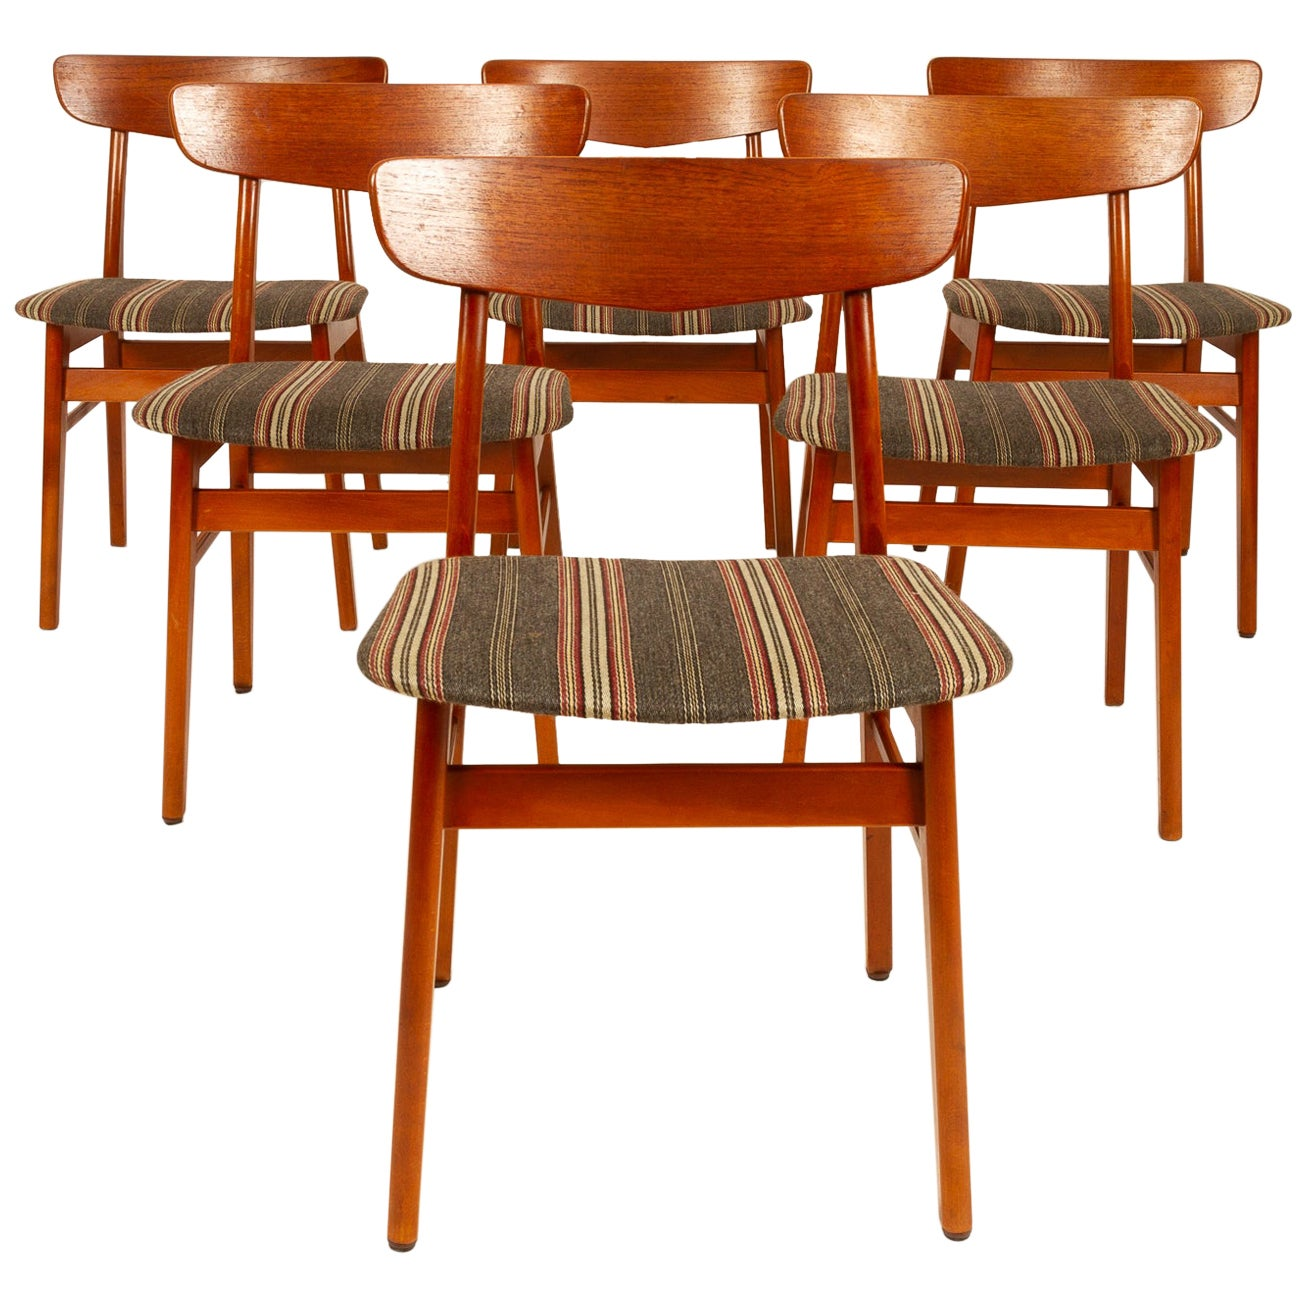 Vintage Danish Teak Dining Chairs 1960s Set of 6